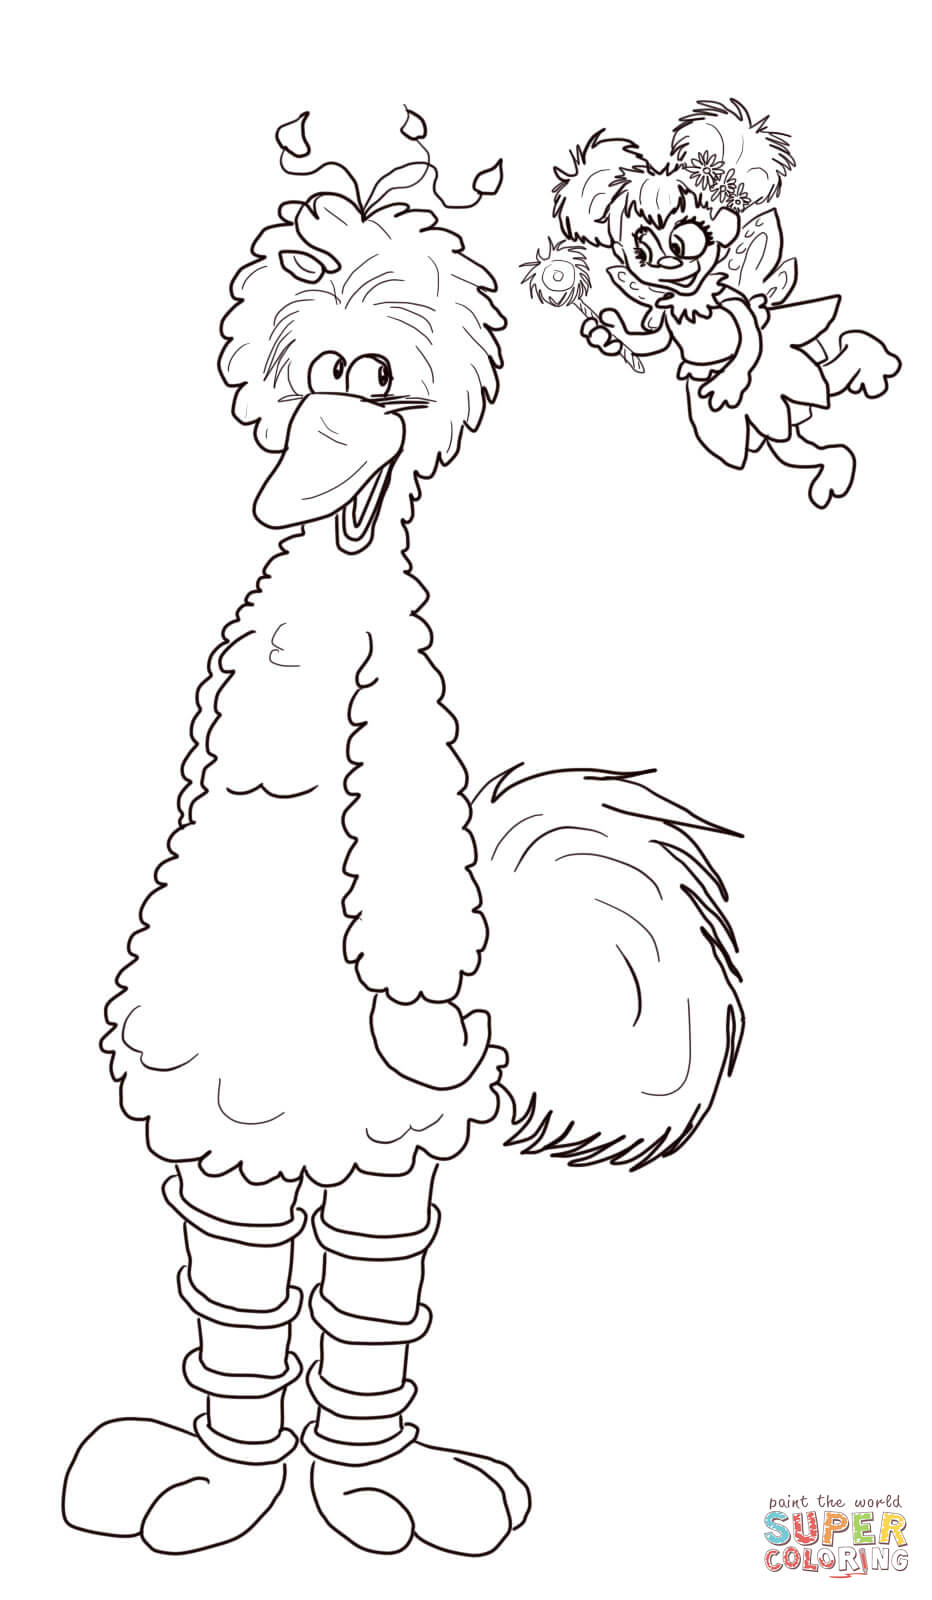 Abby cadabby and big bird coloring page free printable for Big bird coloring pages printable free